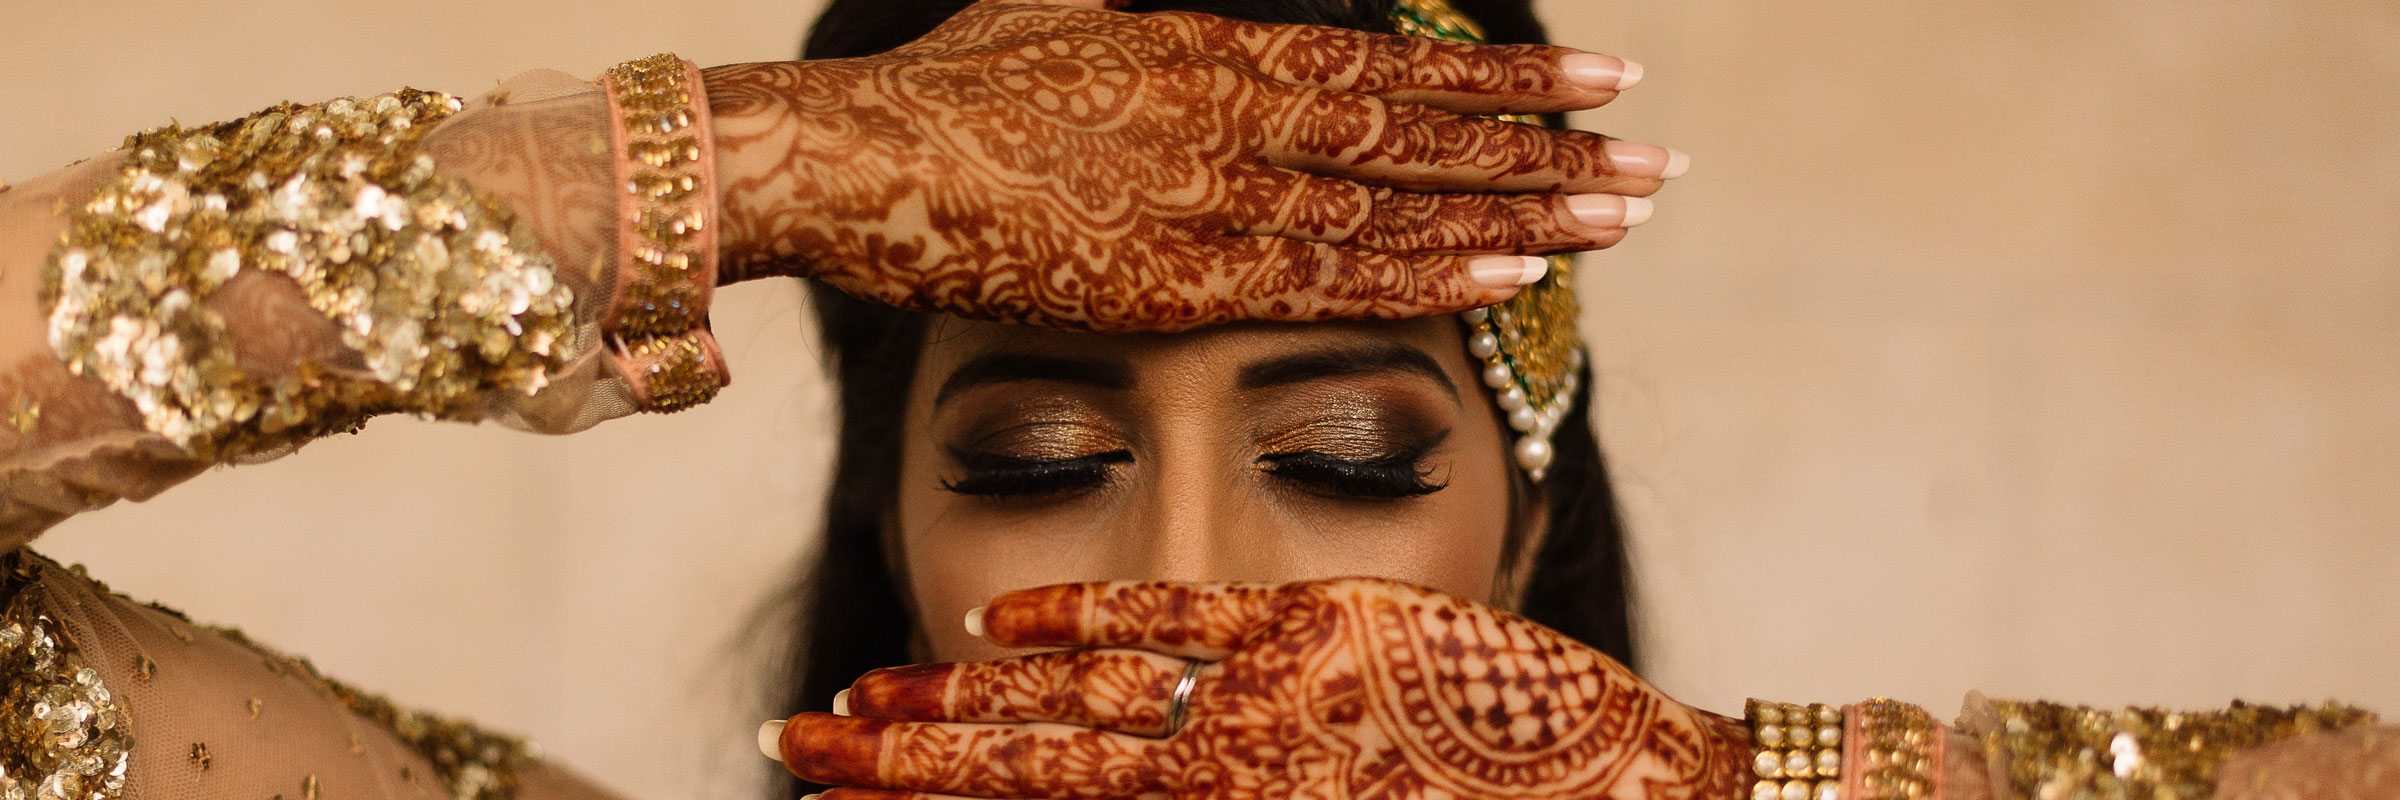 asian wedding photoshoot